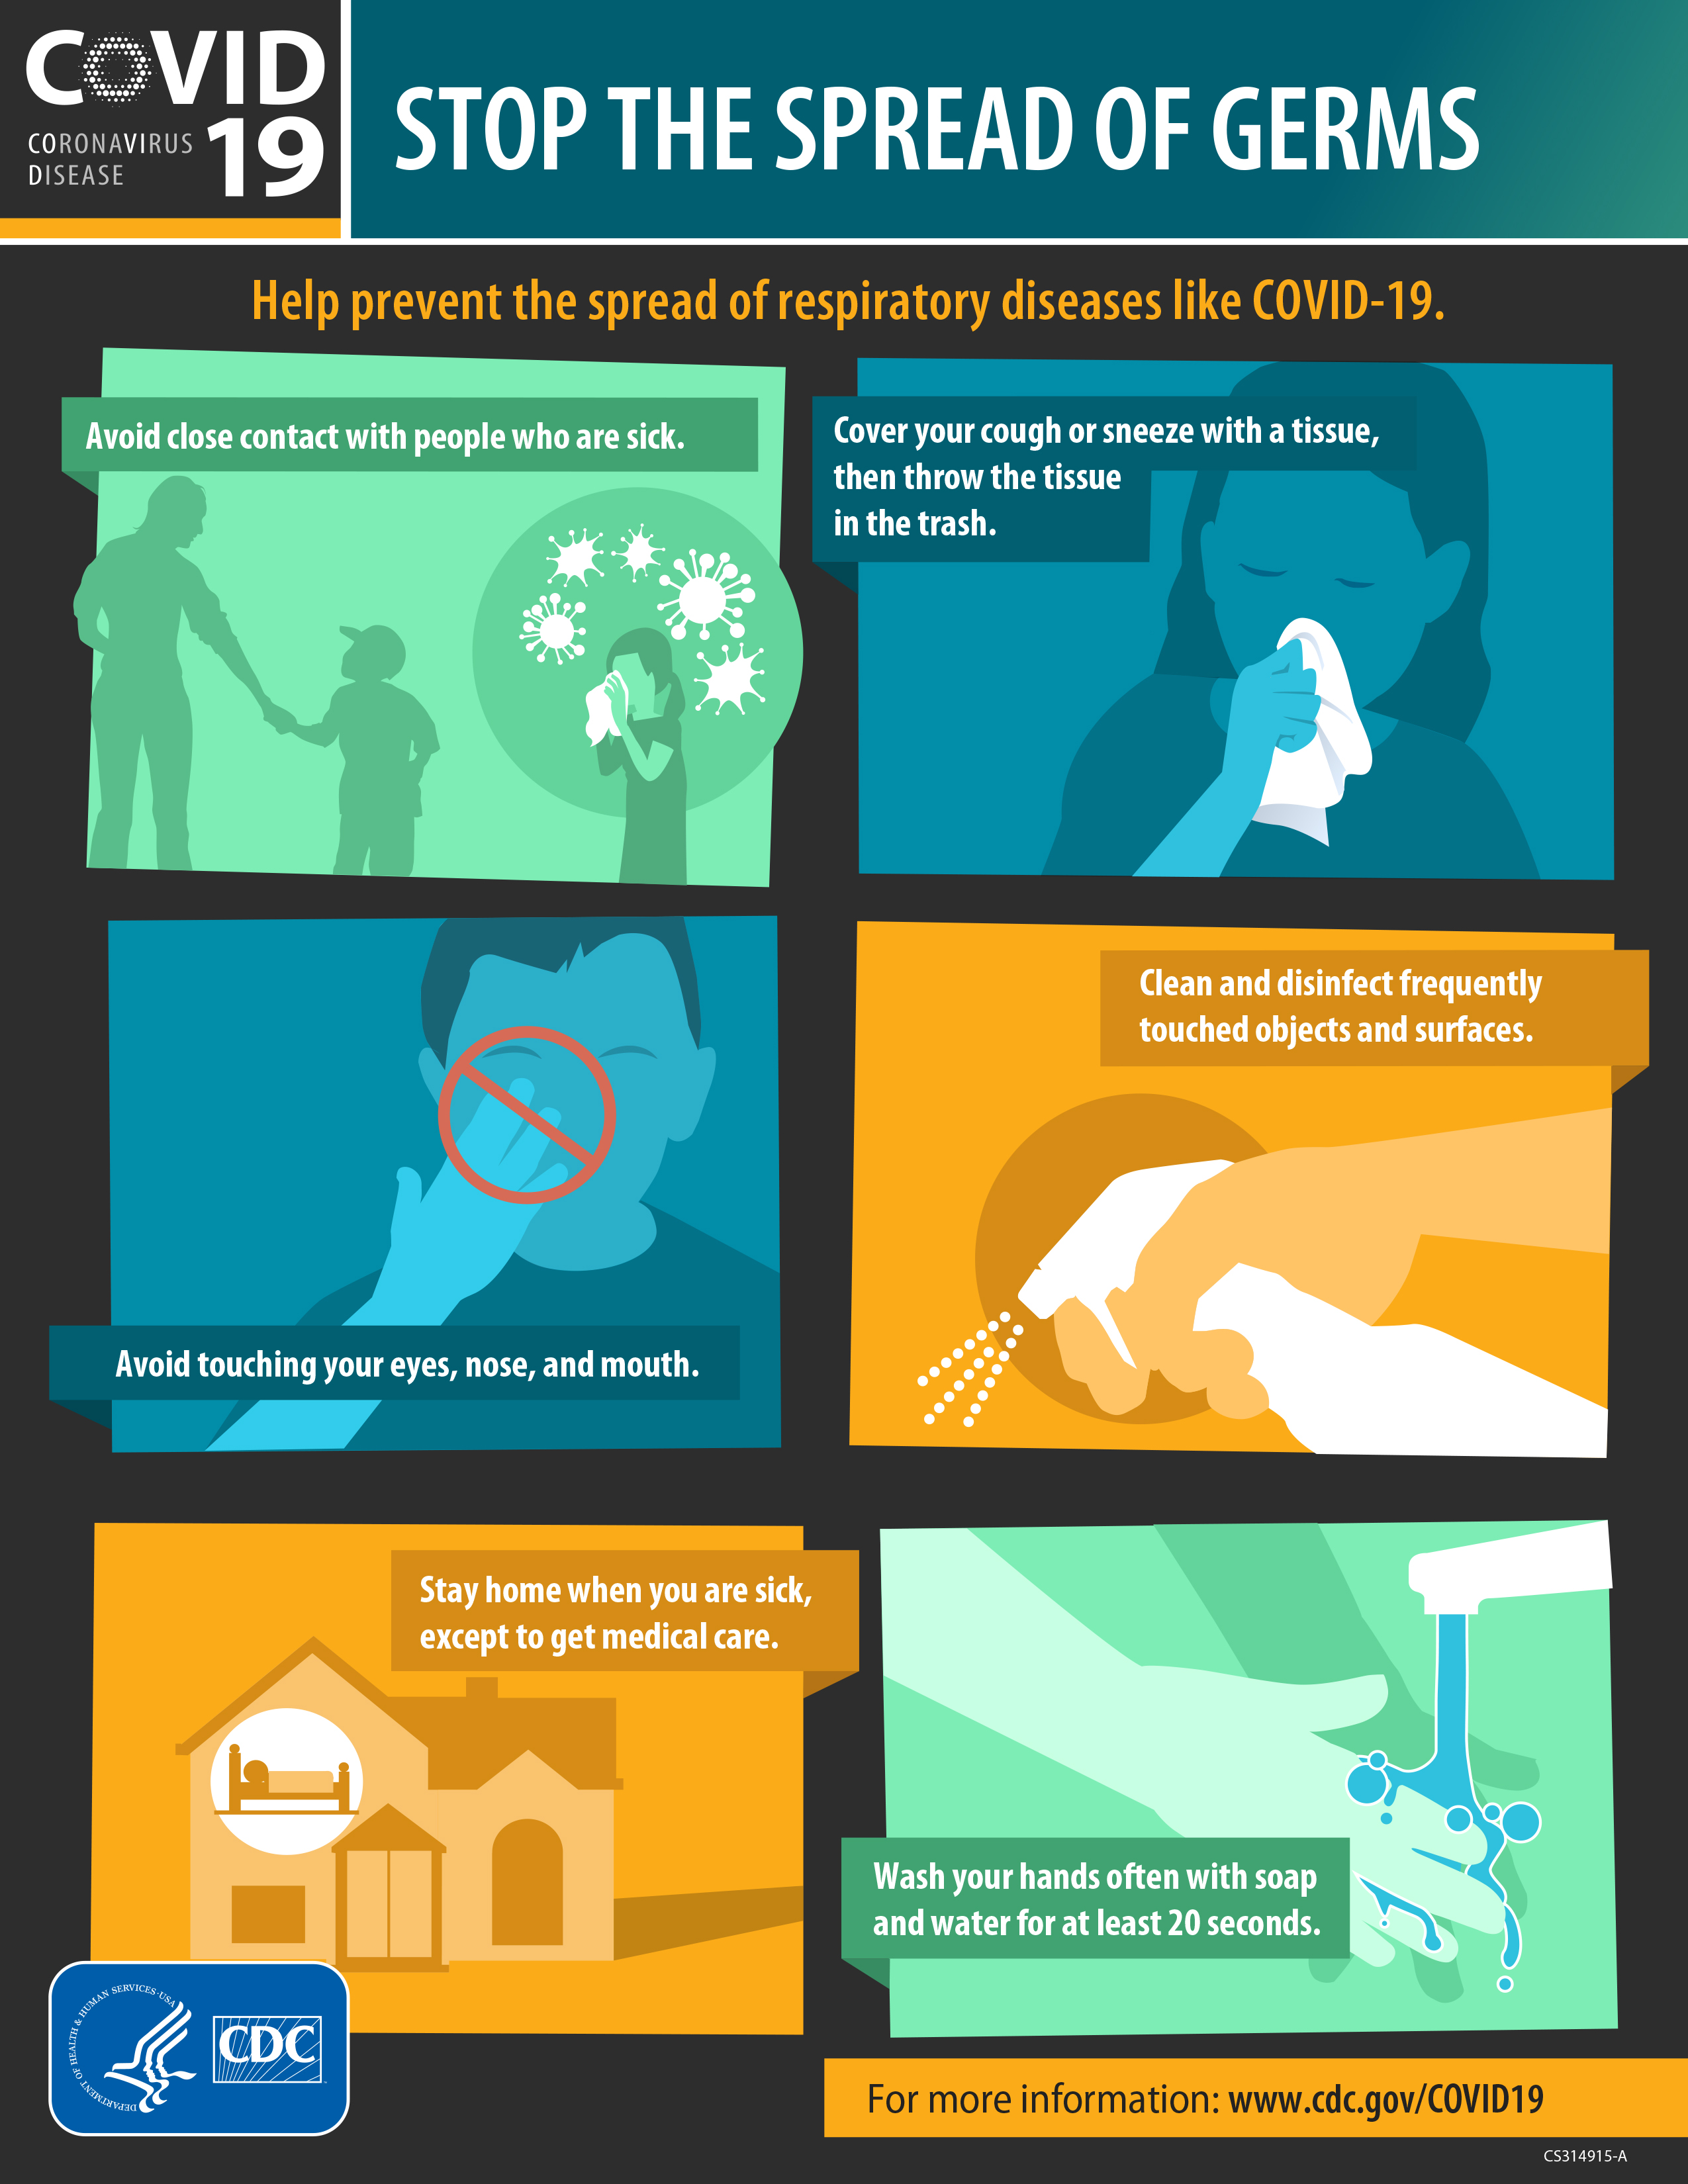 A graphic about how to stop the spread of germs